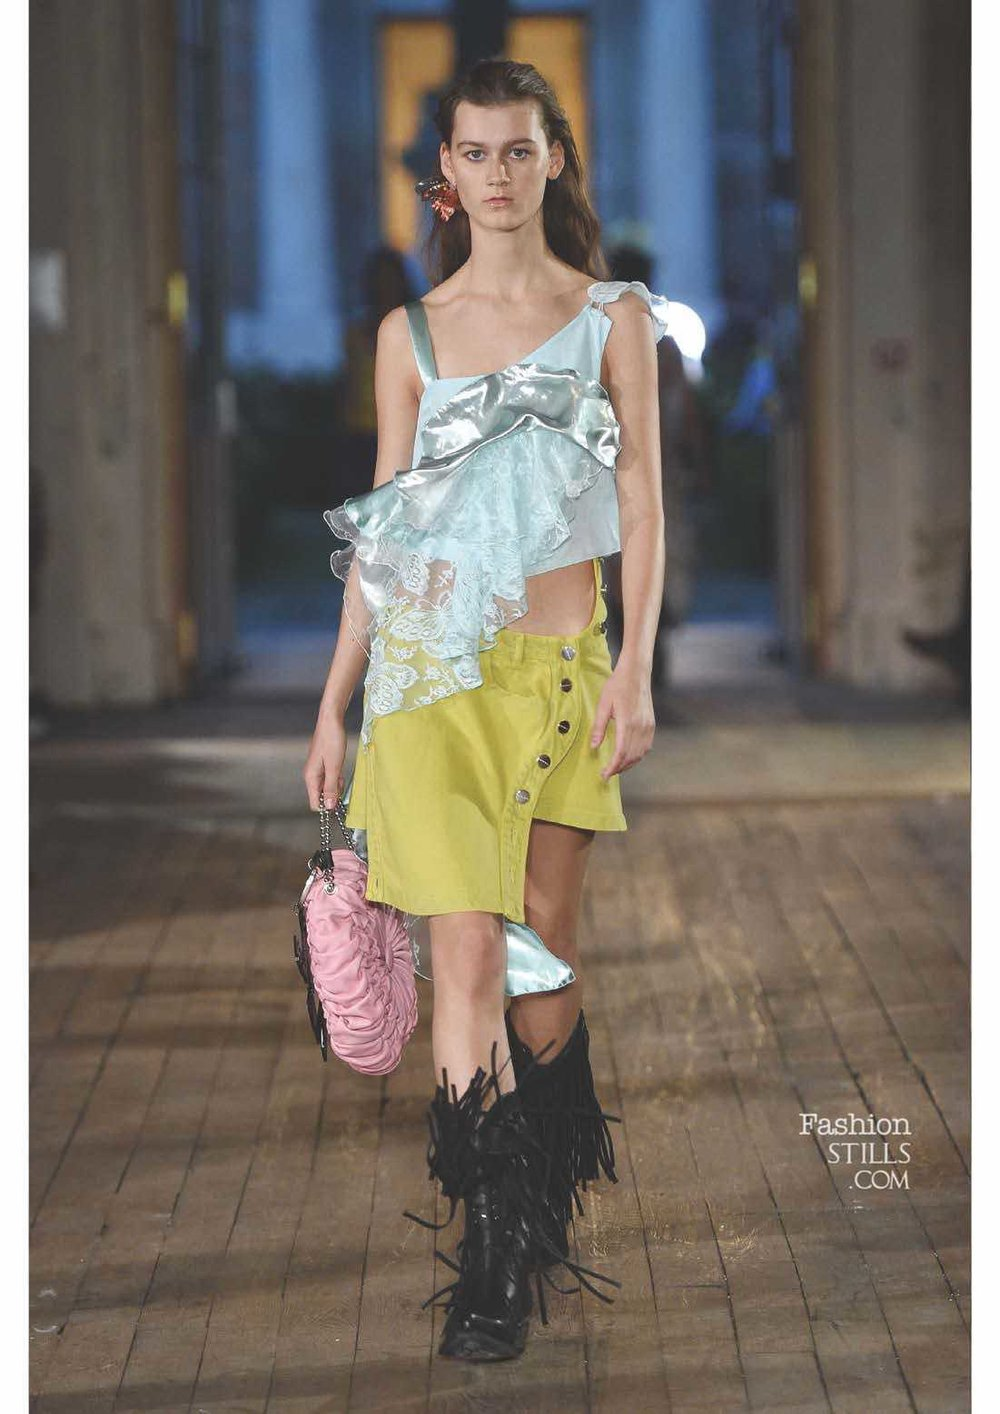 Neith Nyer_1513681575_13_look-book-_-press-release-ss18-neith-nyer-024.jpg